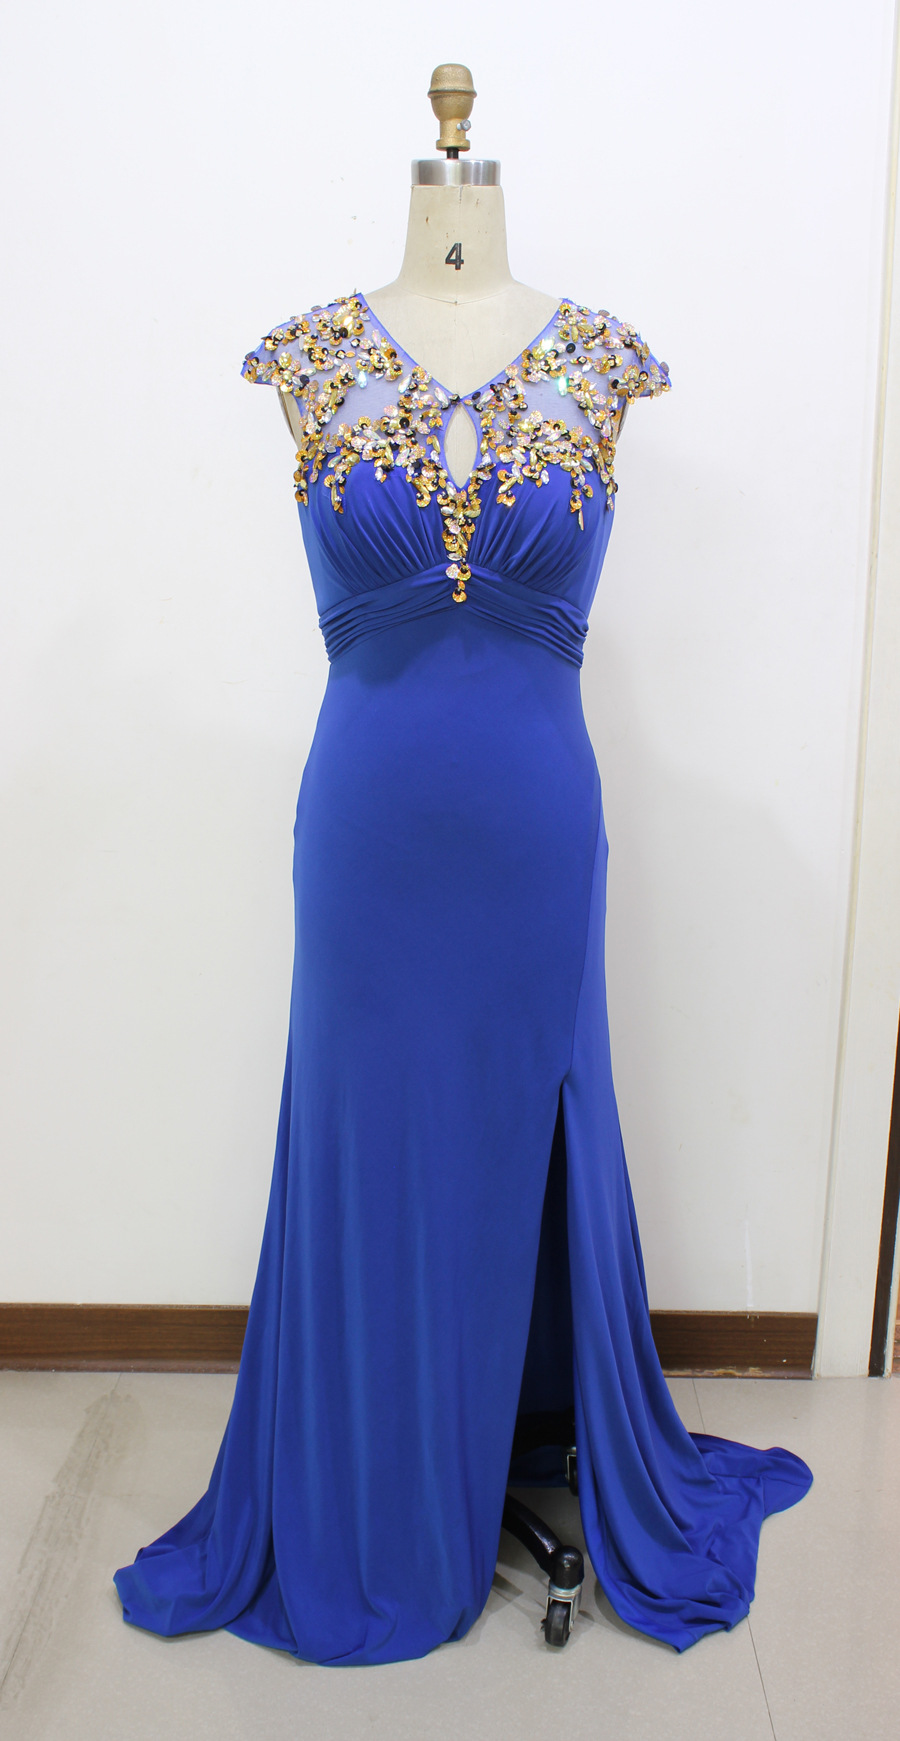 2016 Real Image Picture Evening Dresses New Cheap Sexy Royal Blue Side Slit Flower Backless Long Formal Prom Party Gowns Gowns